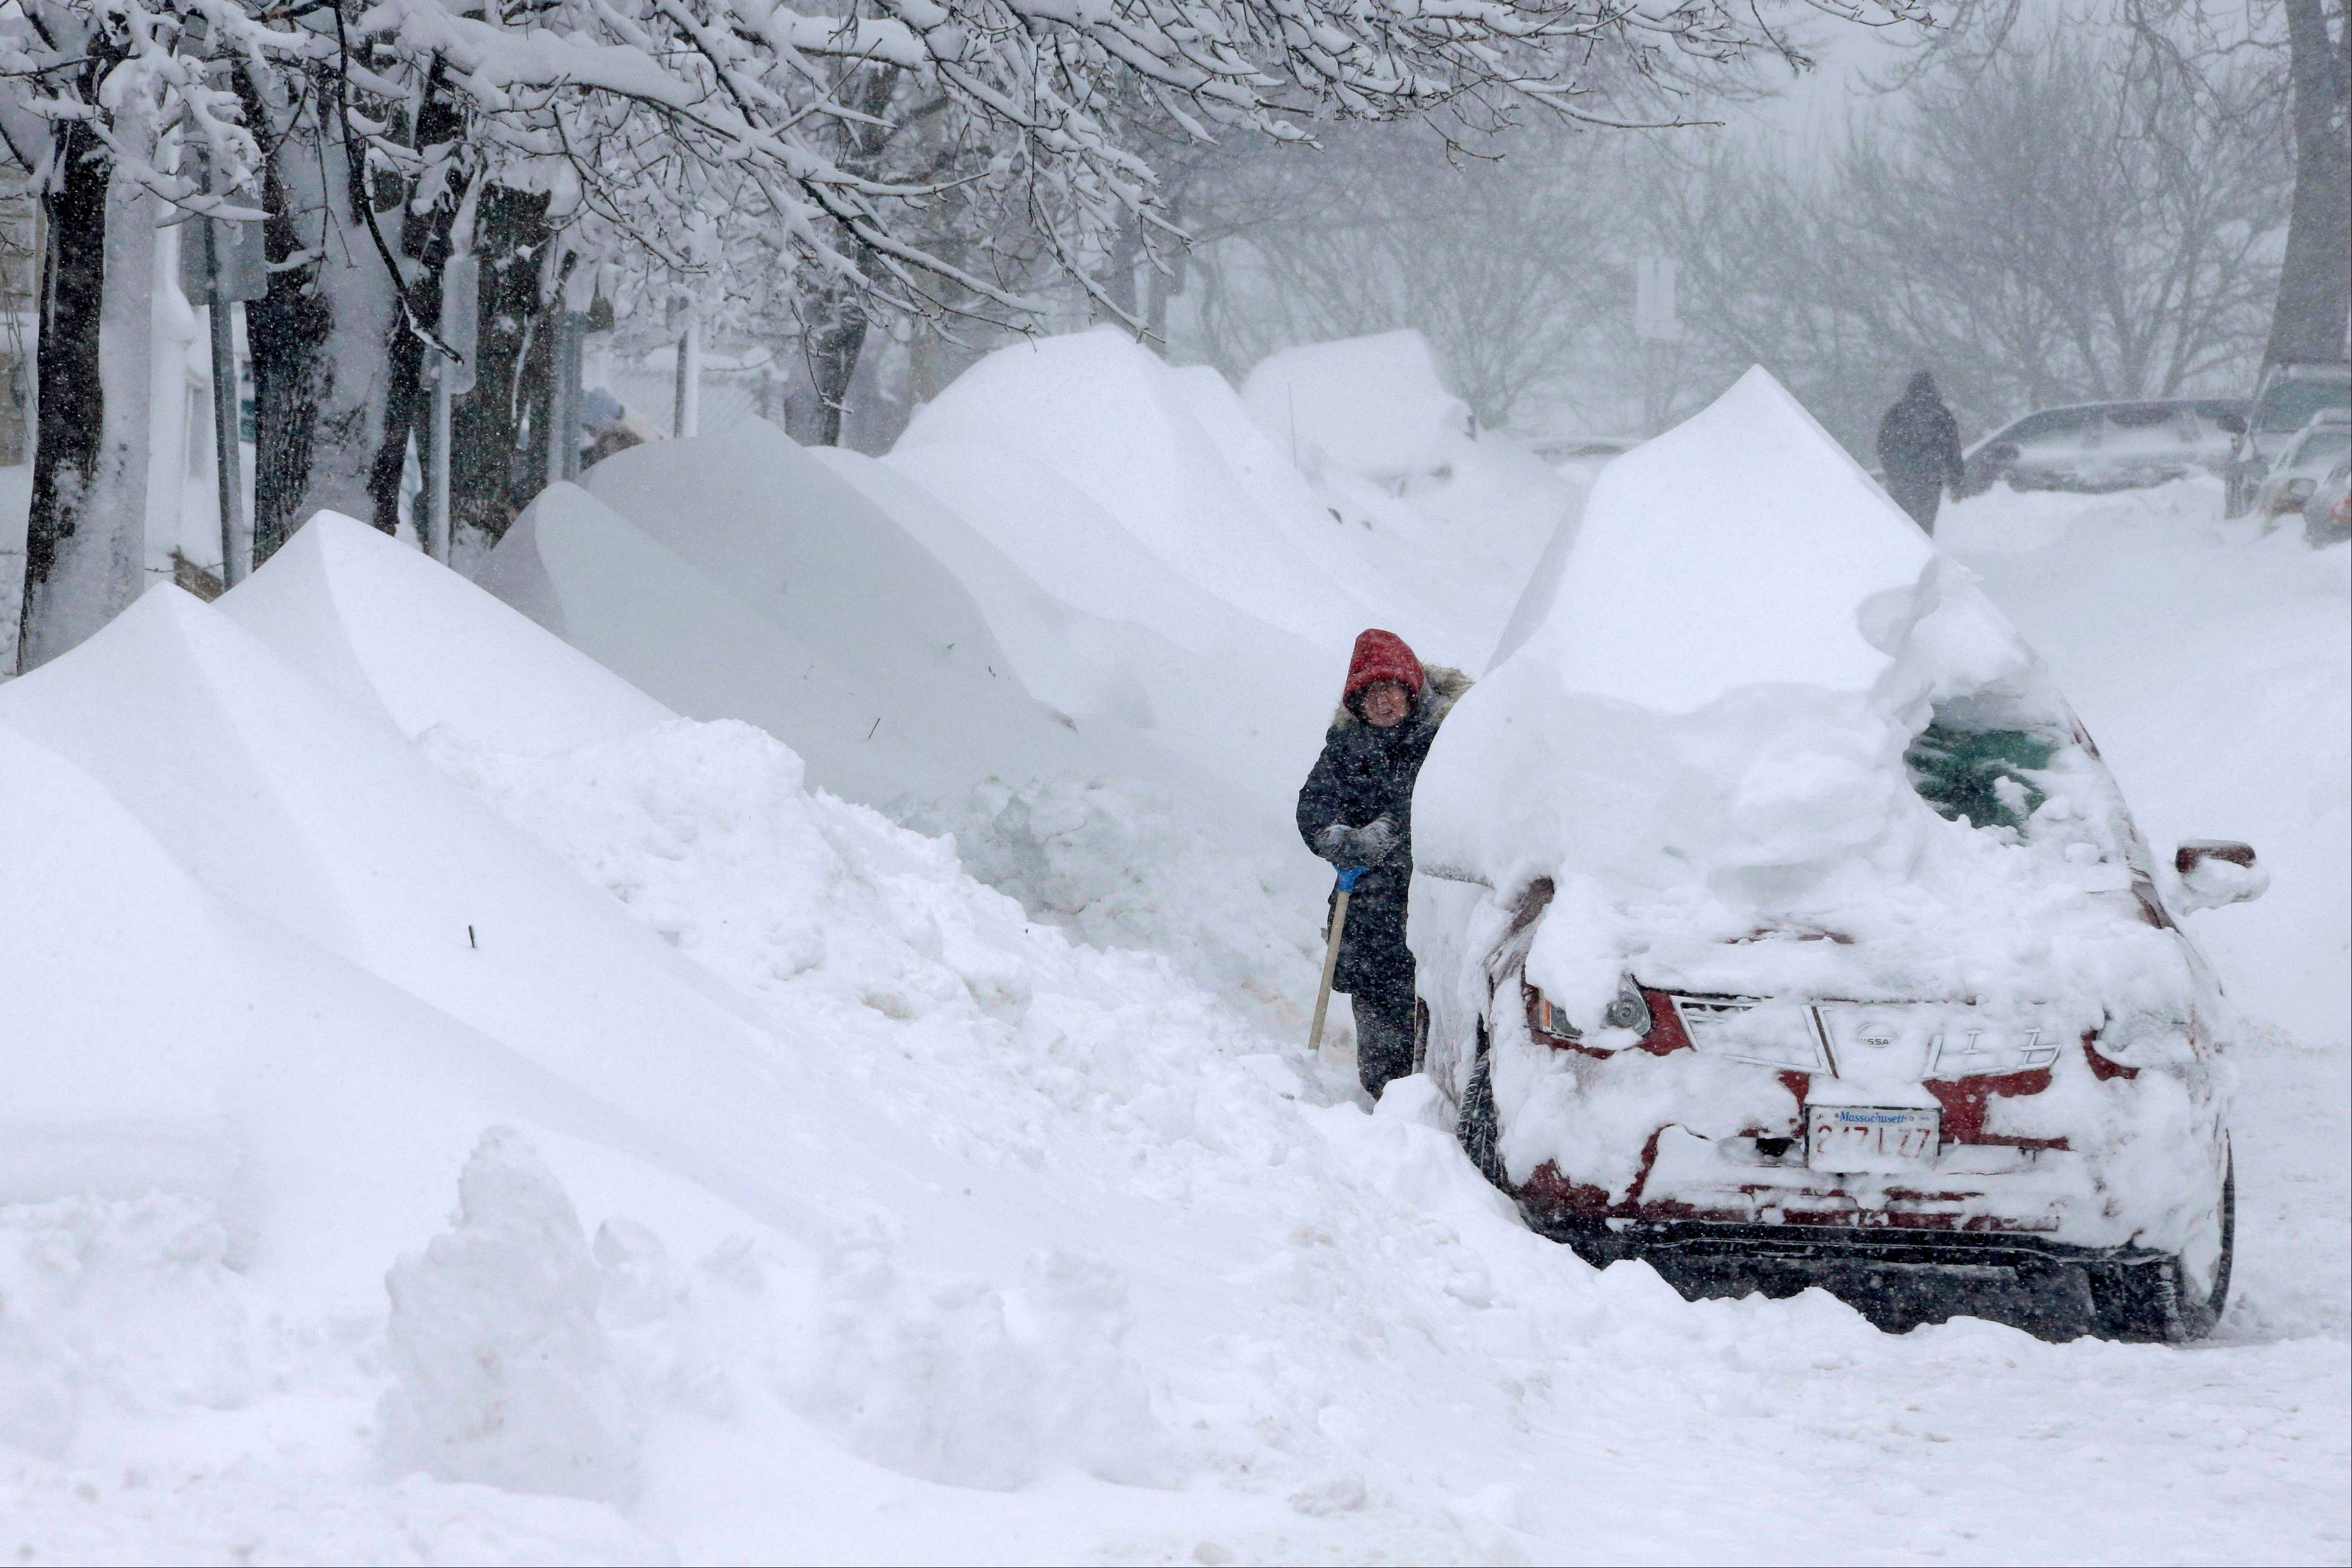 A woman shovels snow to clear out a car on Third Street in the South Boston neighborhood of Boston on Saturday, Feb. 9, 2013. A behemoth storm packing hurricane-force wind gusts and blizzard conditions swept through the Northeast overnight.